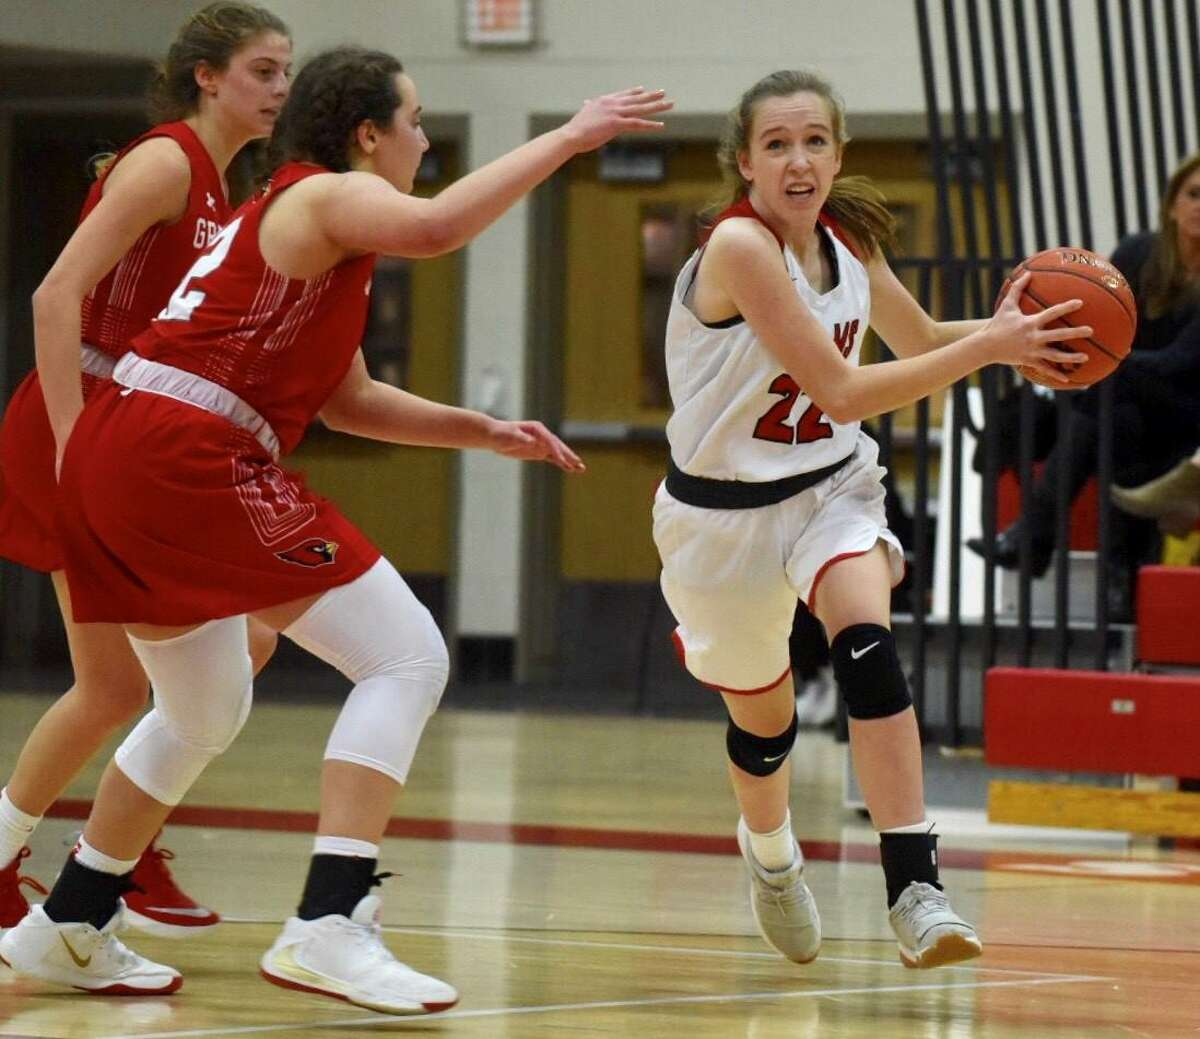 New Canaan's Katherine Lisecky (22) drives to the hoop against Greenwich on Tuesday.